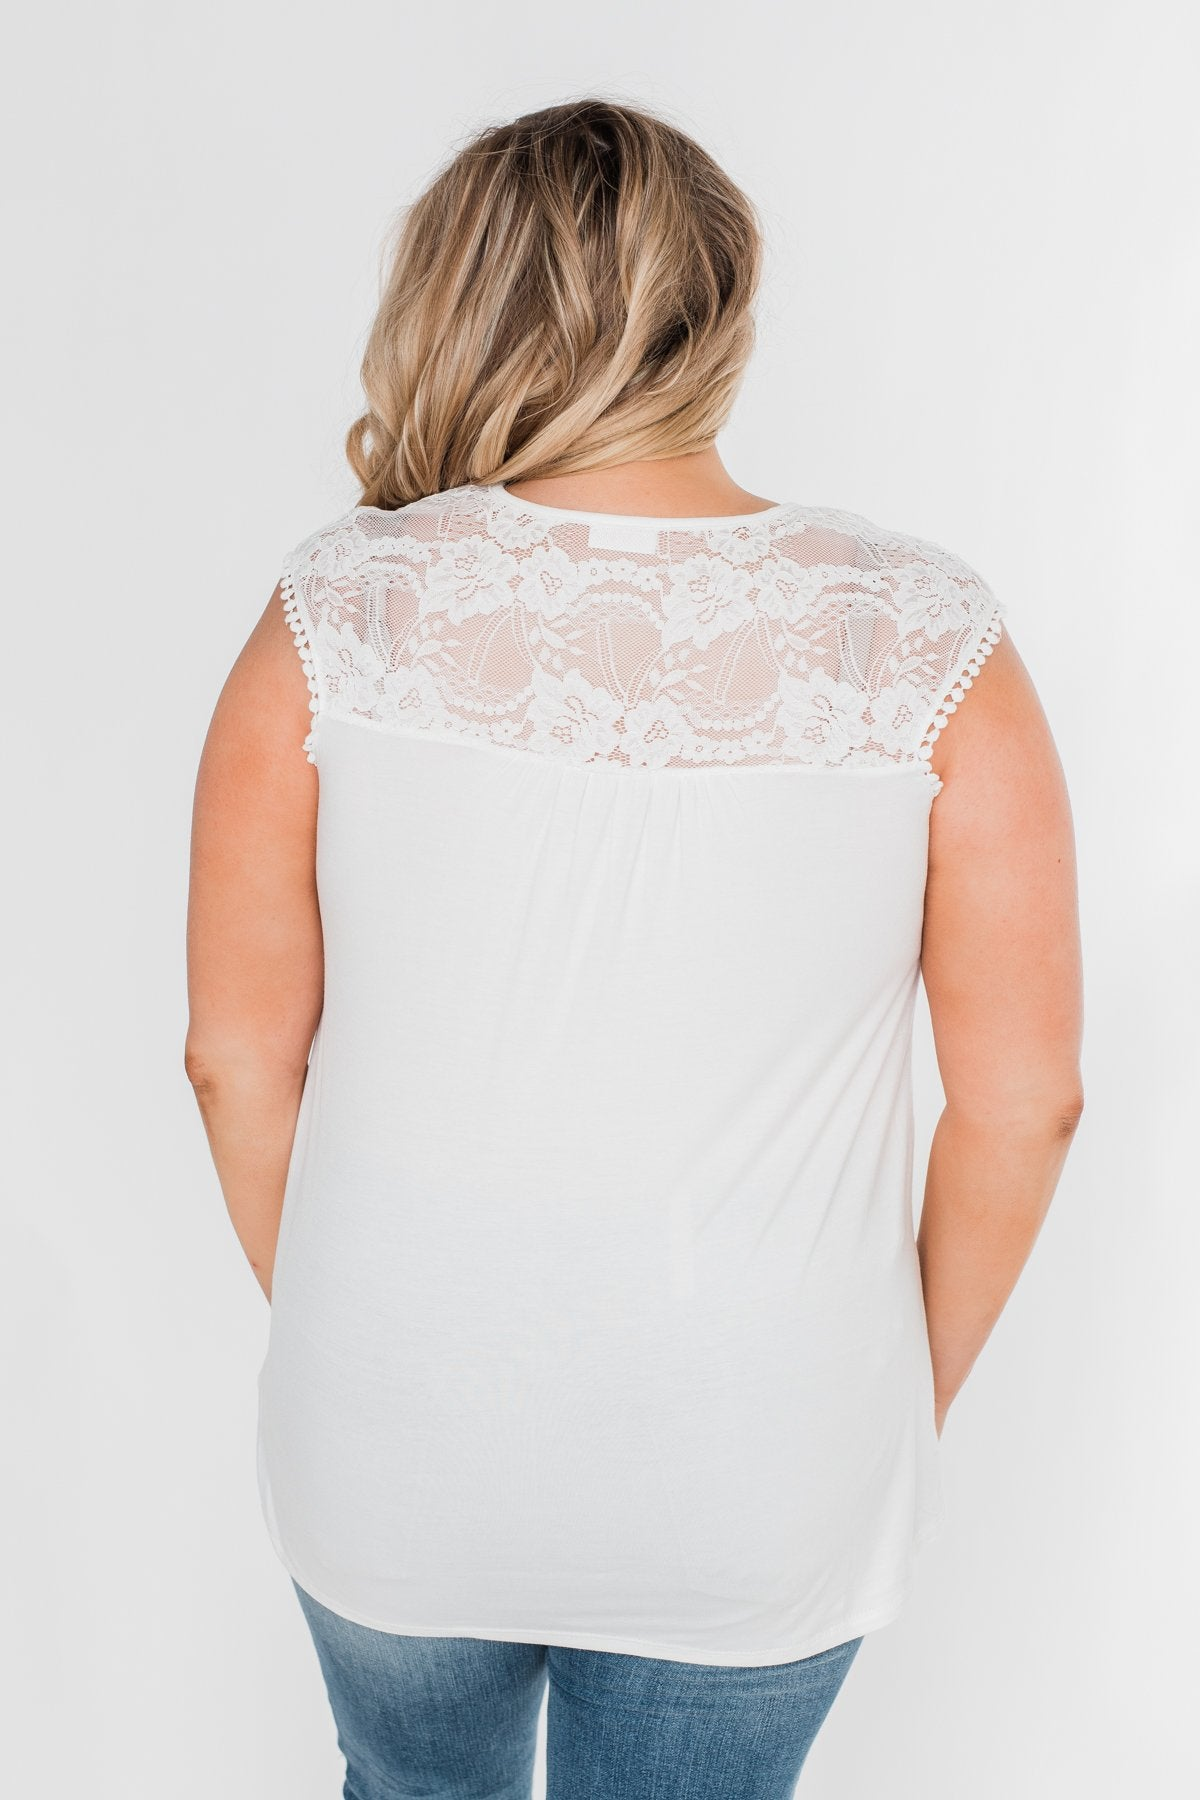 Won't Let You Go Lace Detail Top- White